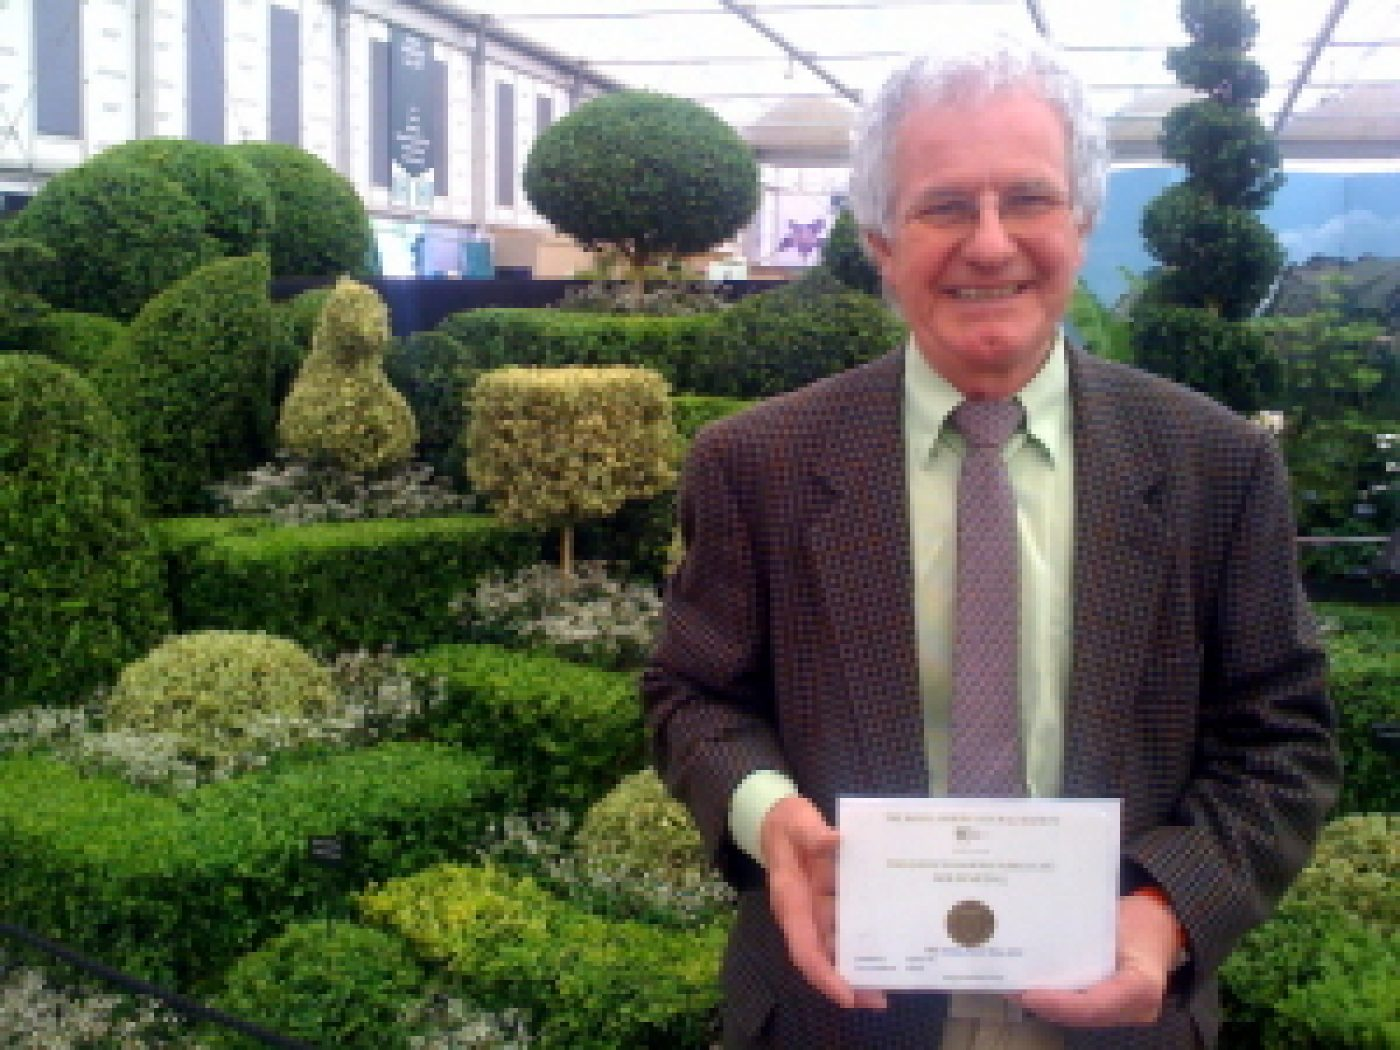 James Crebbin-Bailey with his Chelsea Gold Medal certificate